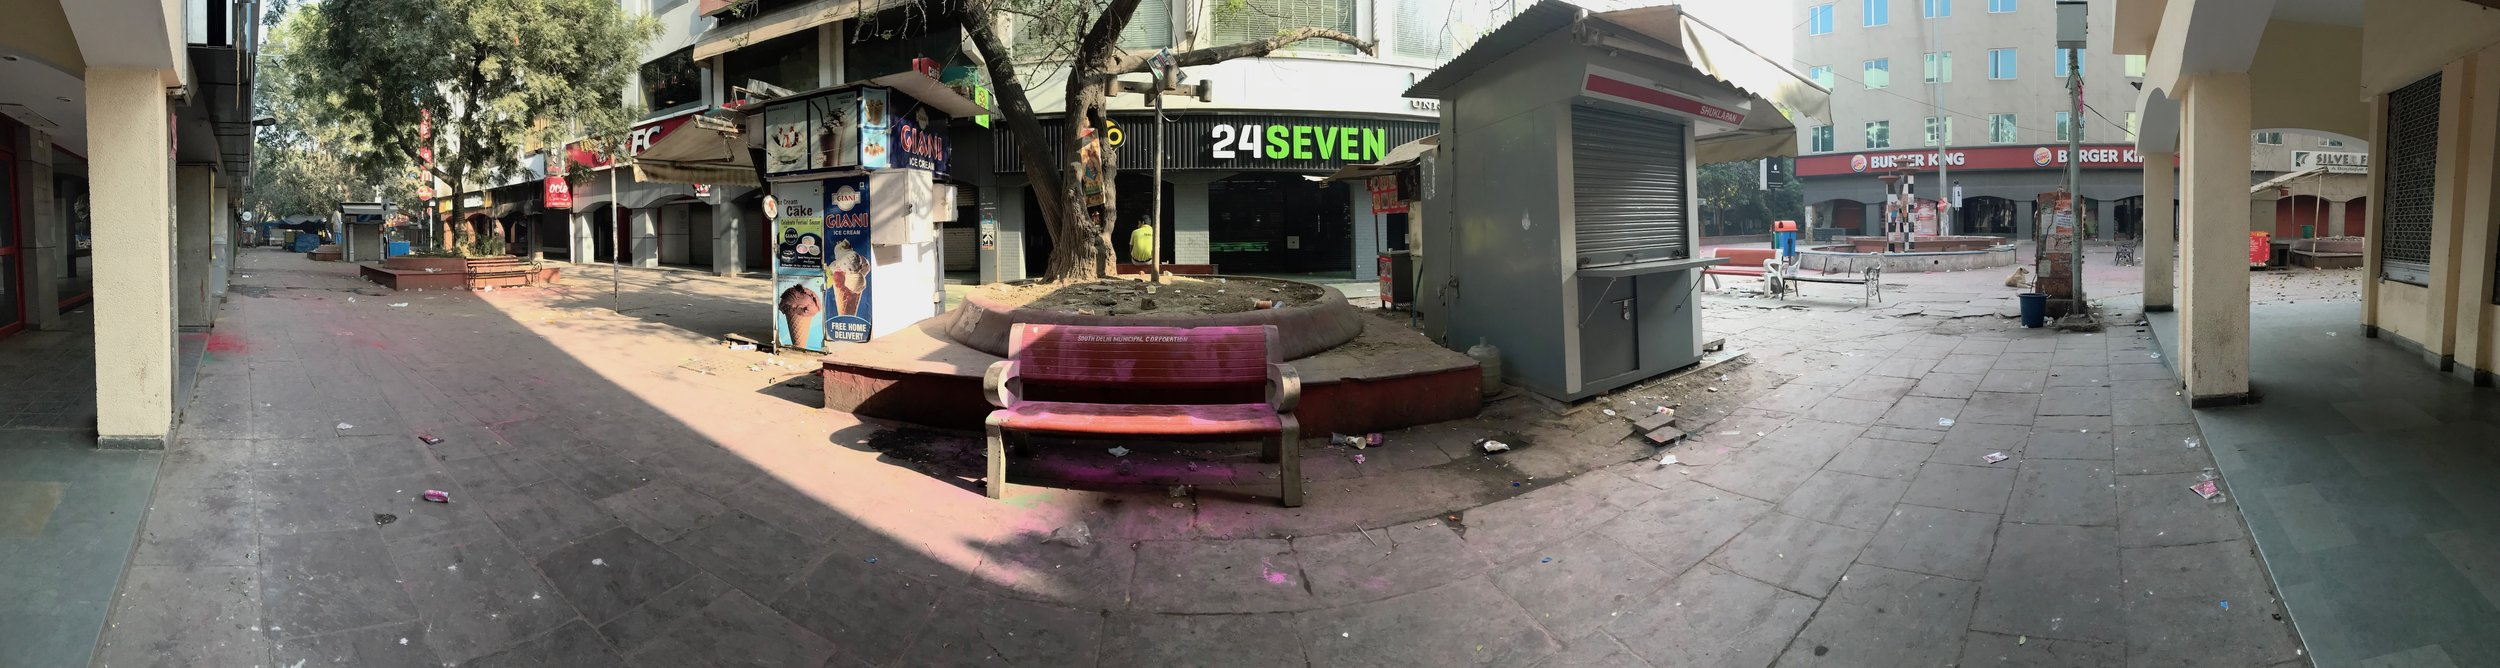 Scenes from an incredibly empty market during Holi 2018